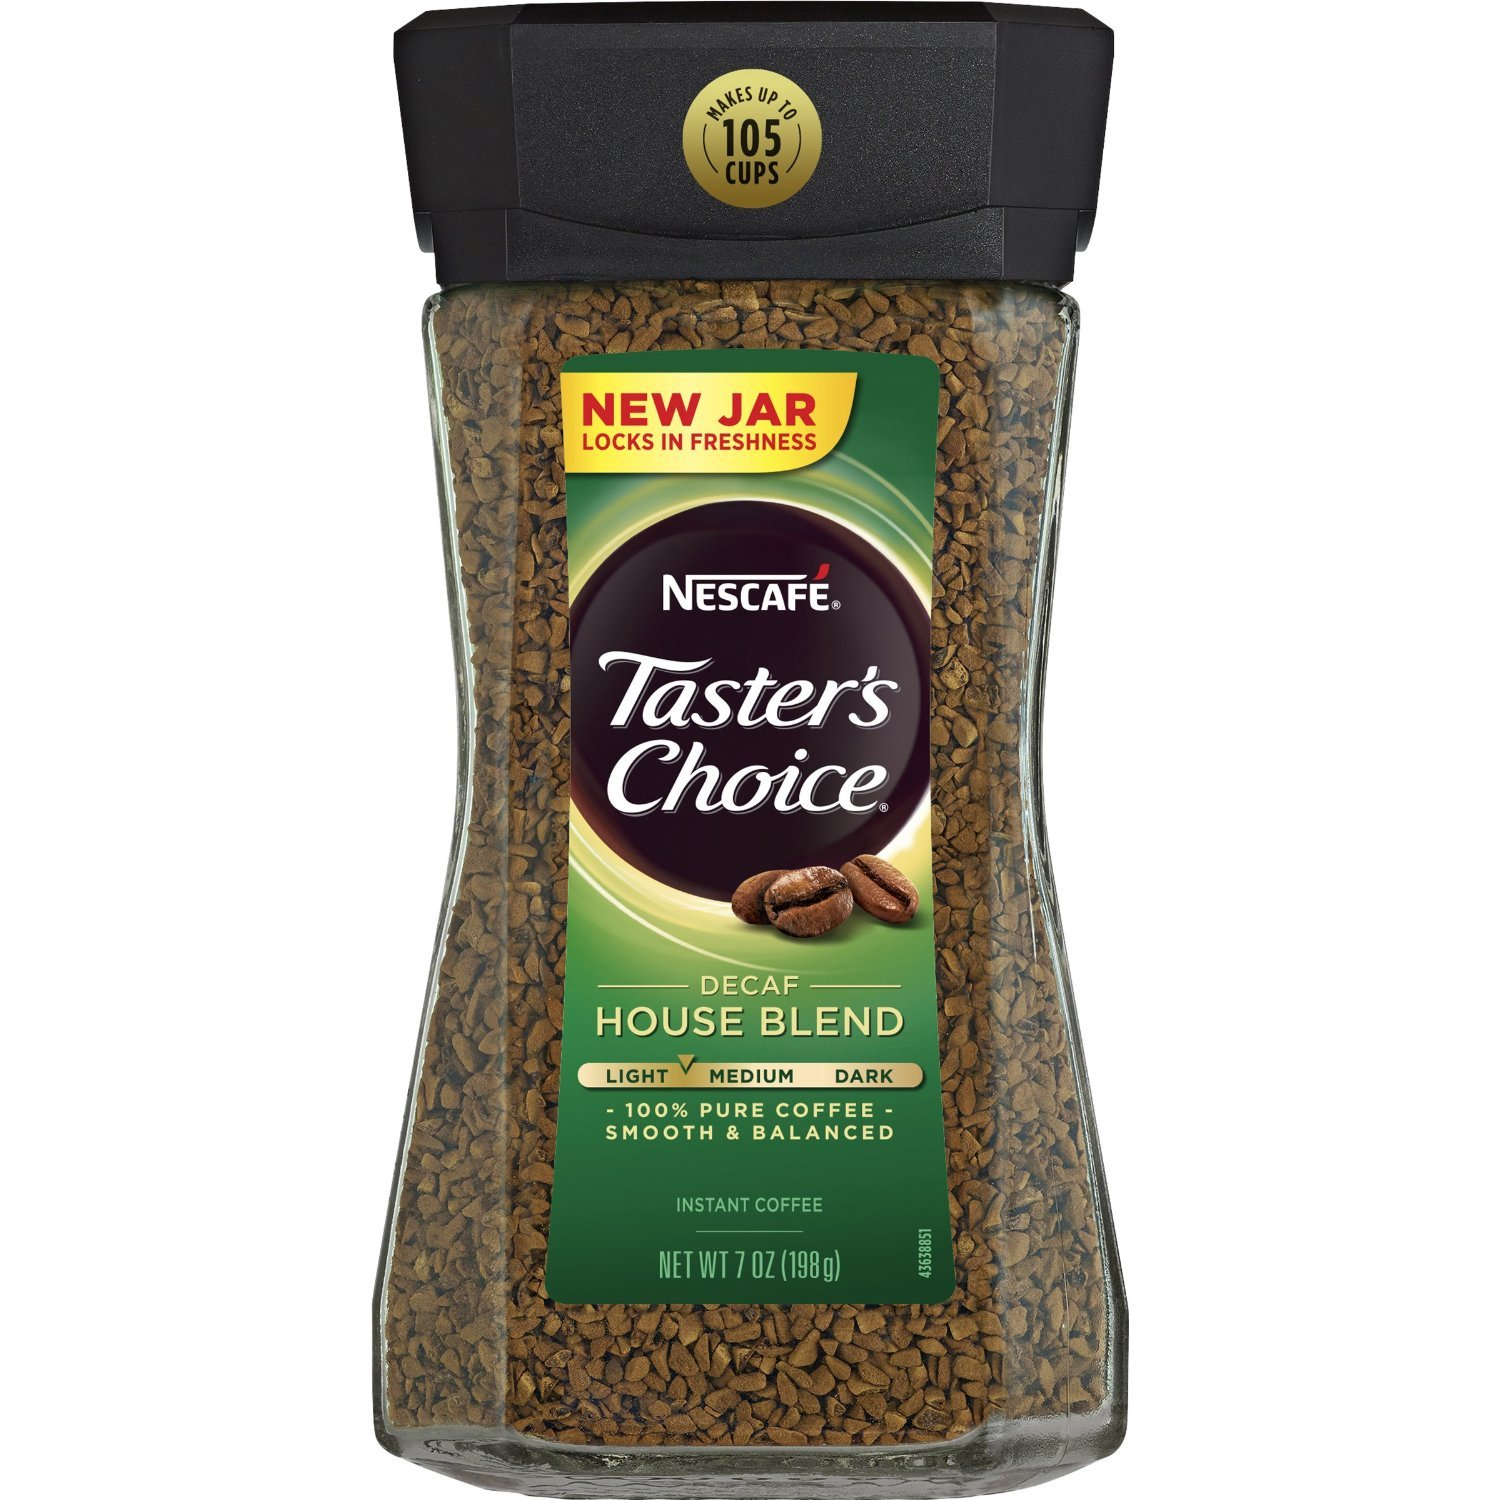 Nescafe Taster's Choice Decaf Instant Coffee, House Blend, 7 Ounce (Pack of 6)